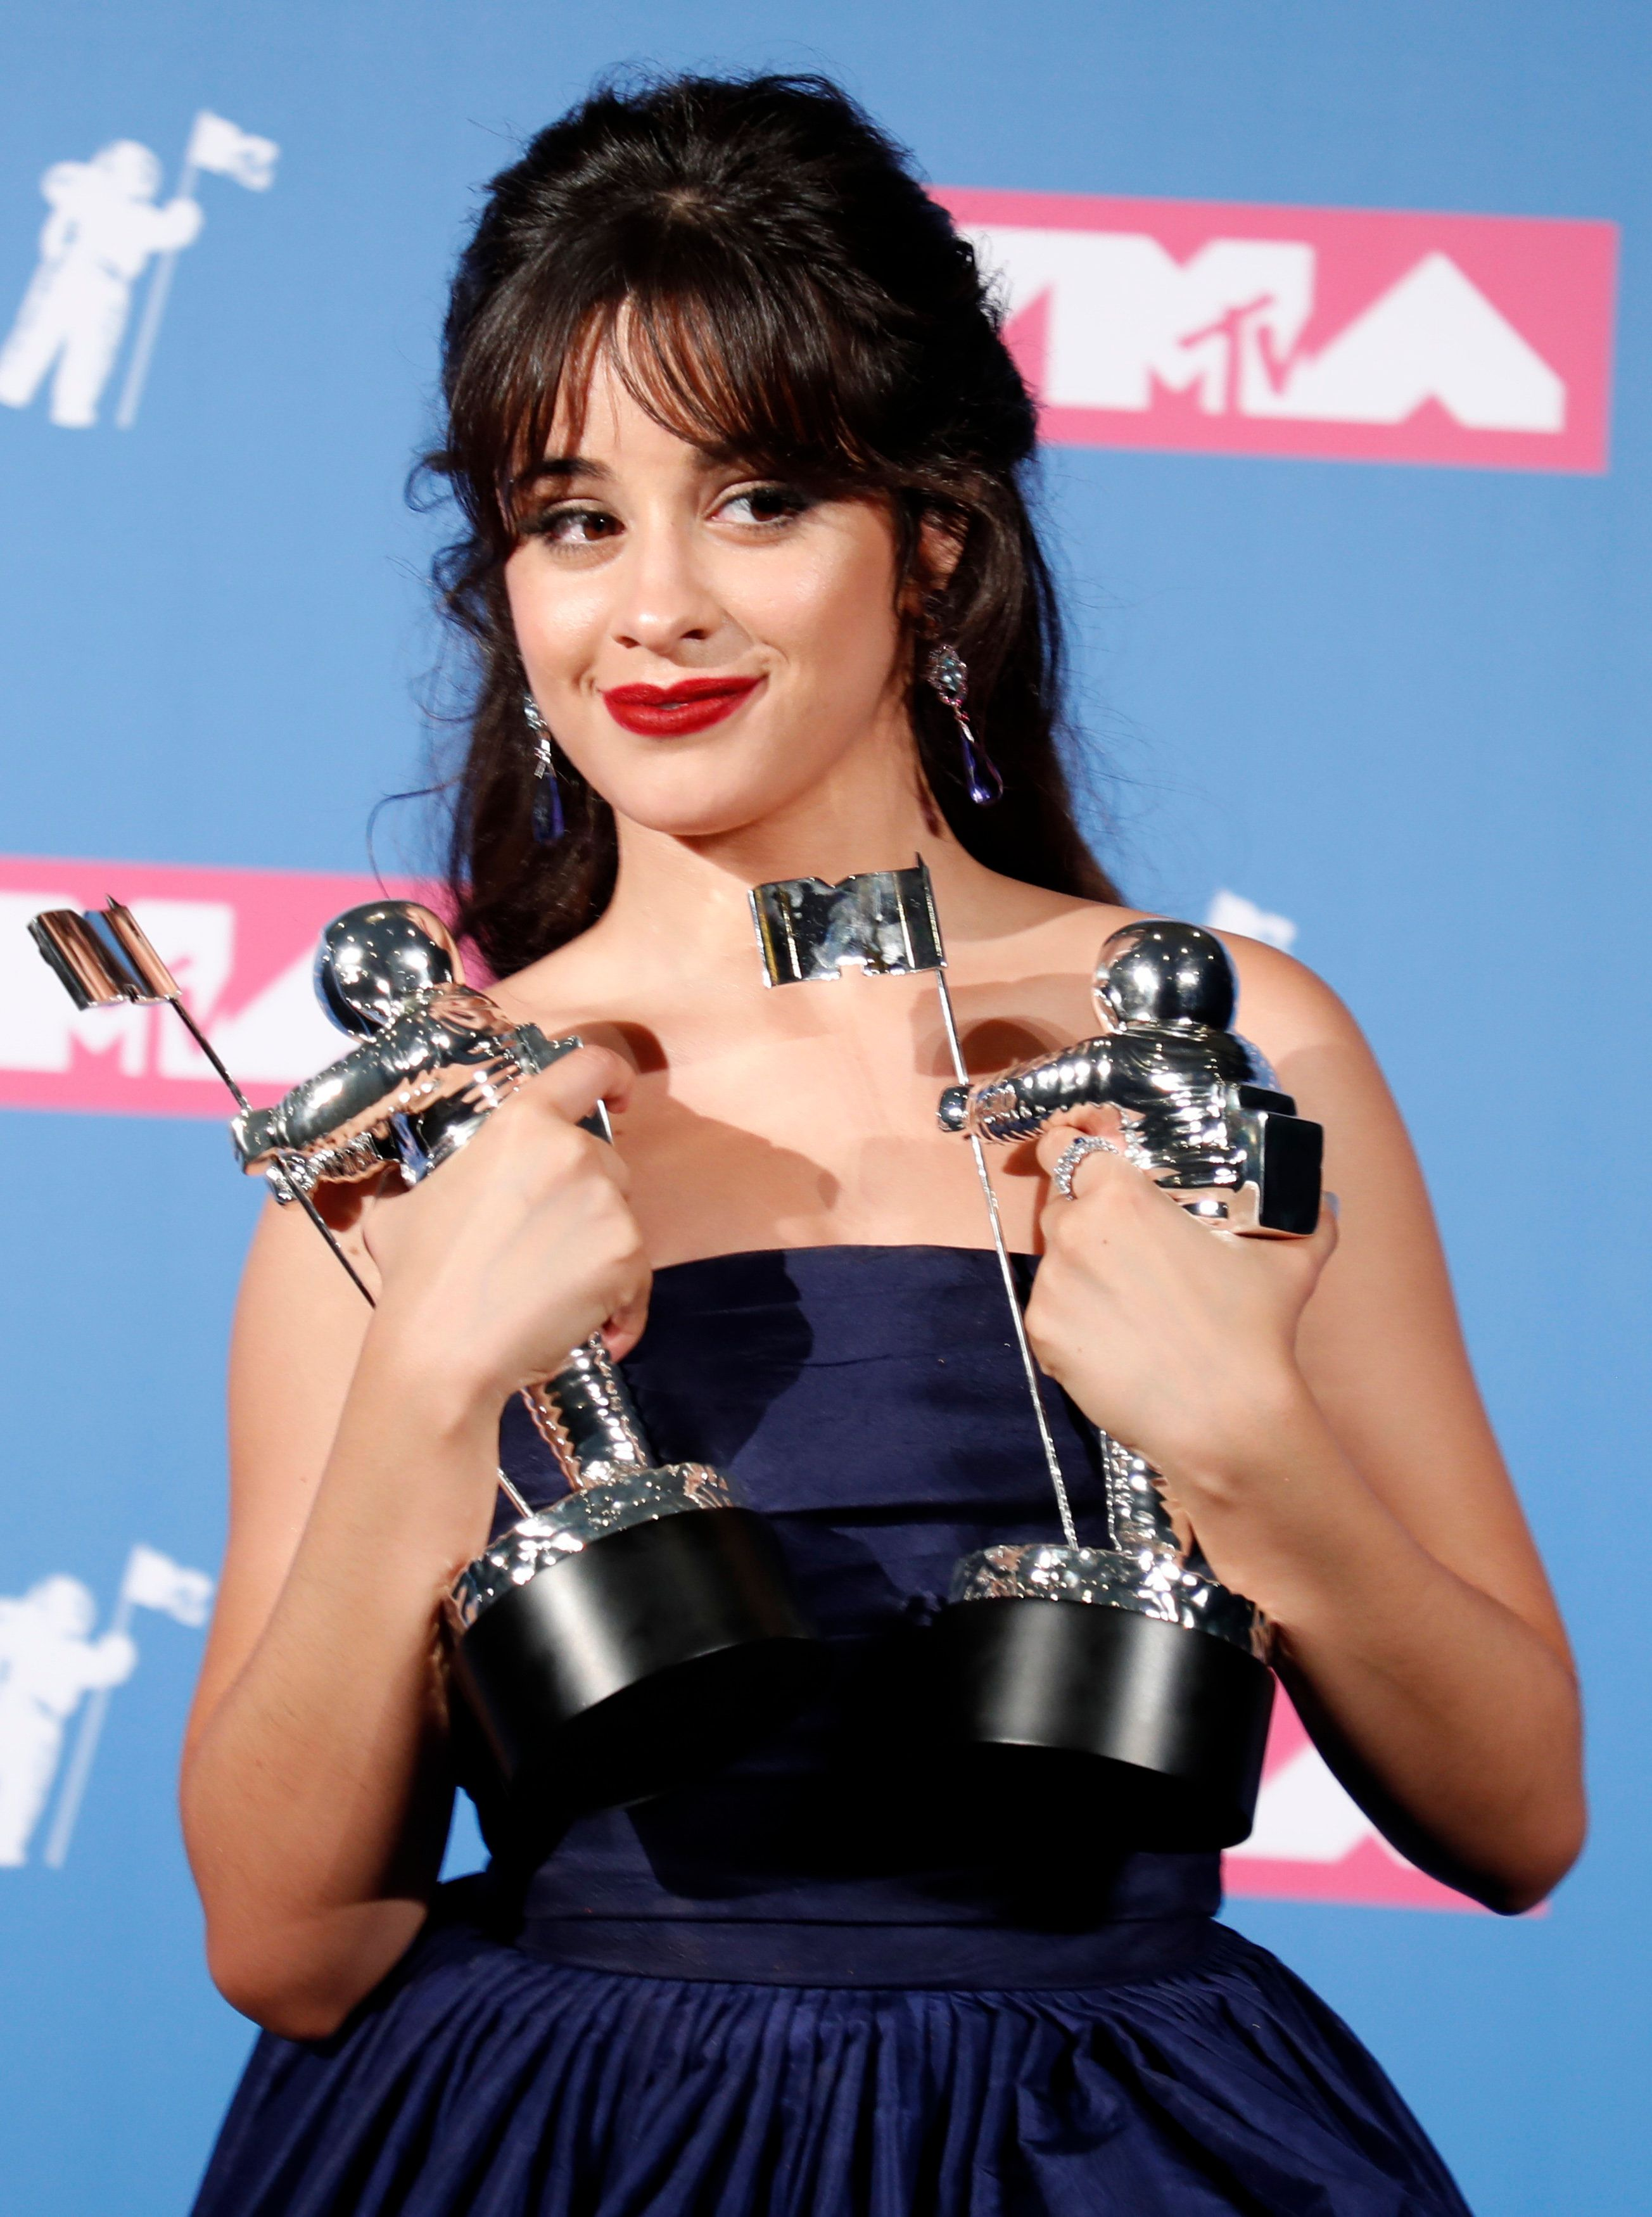 "2018 MTV Video Music Awards - Photo Room - Radio City Music Hall, New York, U.S., August 20, 2018. - Camila Cabello poses backstage with her awards for Artist of the Year and Video of the Year for ""Havana."" REUTERS/Carlo Allegri"